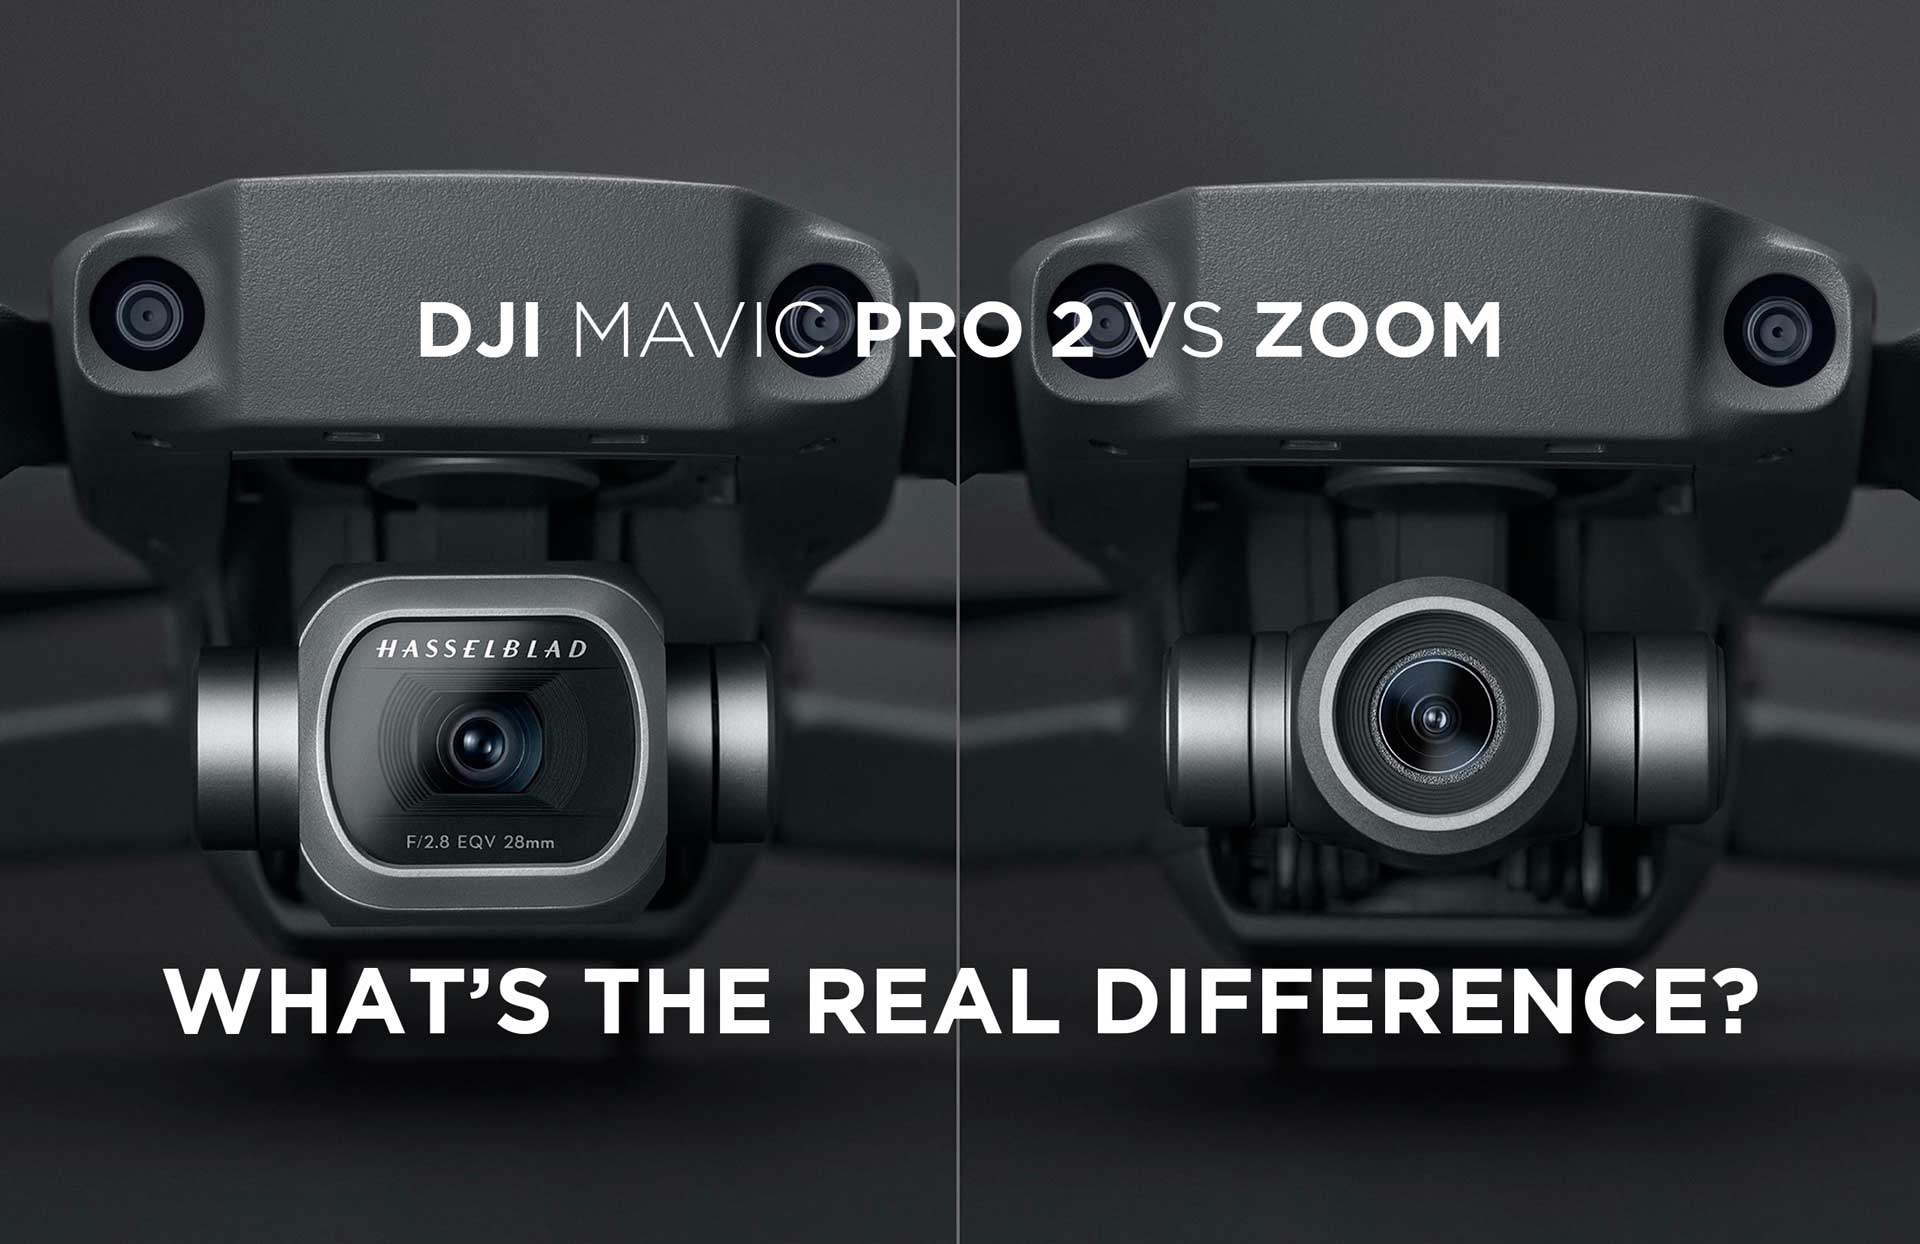 dji mavic pro 2 vs zoom which one for me what 39 s the. Black Bedroom Furniture Sets. Home Design Ideas